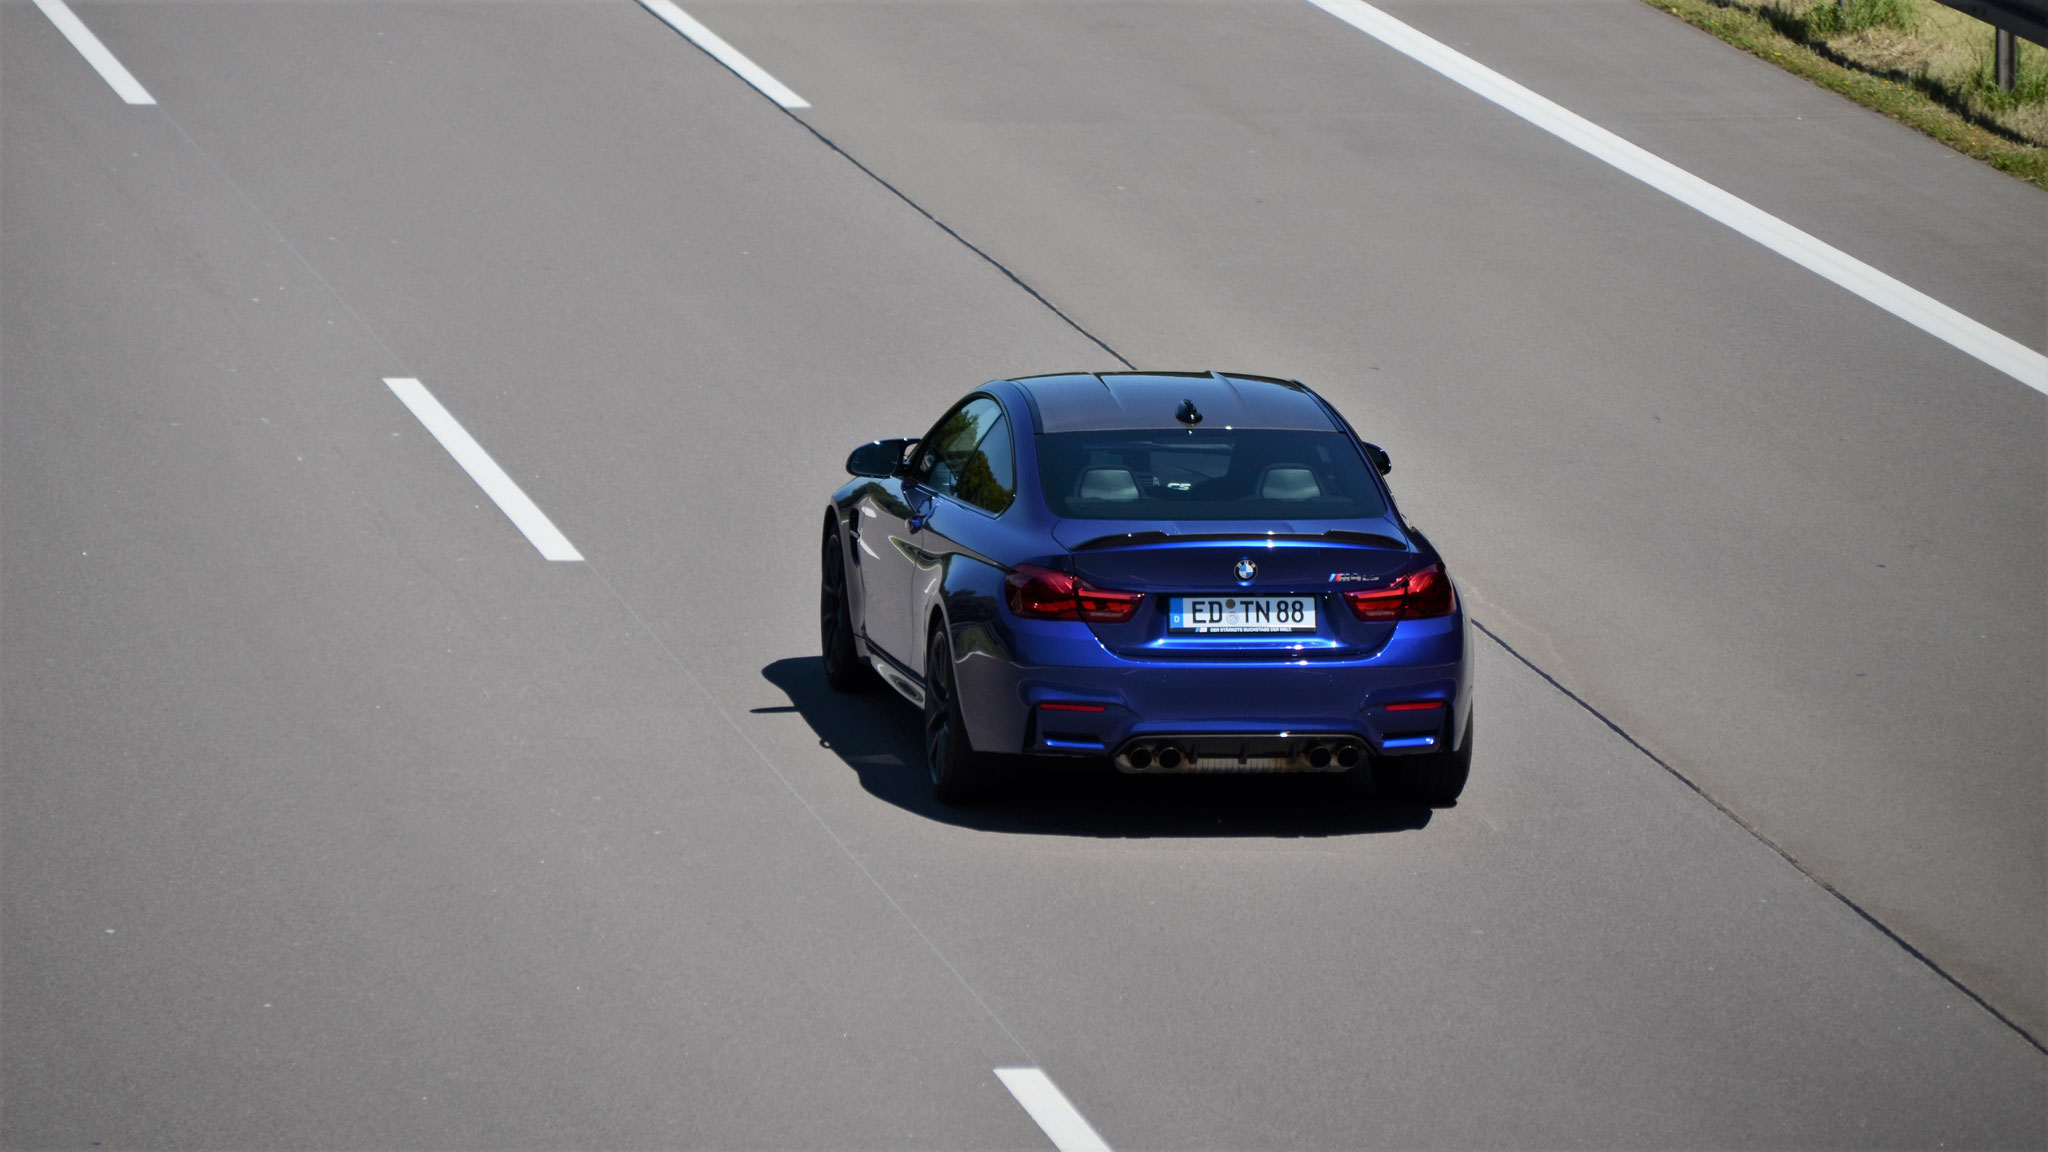 BMW M4 CS - ED-TN-88